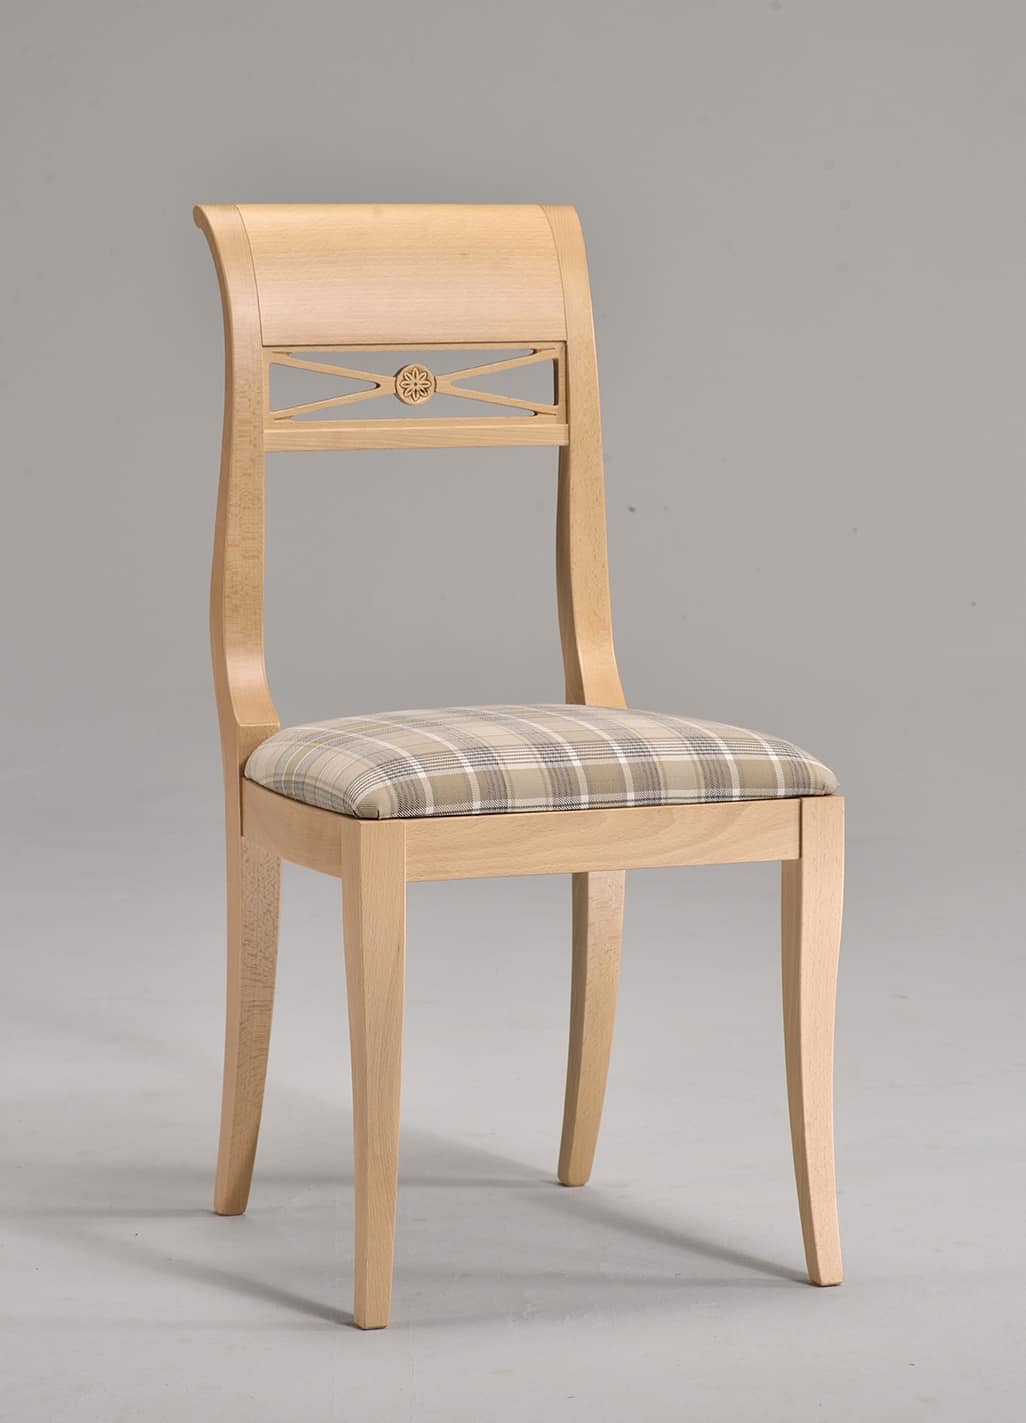 EVA chair 8016S, Chair with upholstered seat, in beech, woven pattern